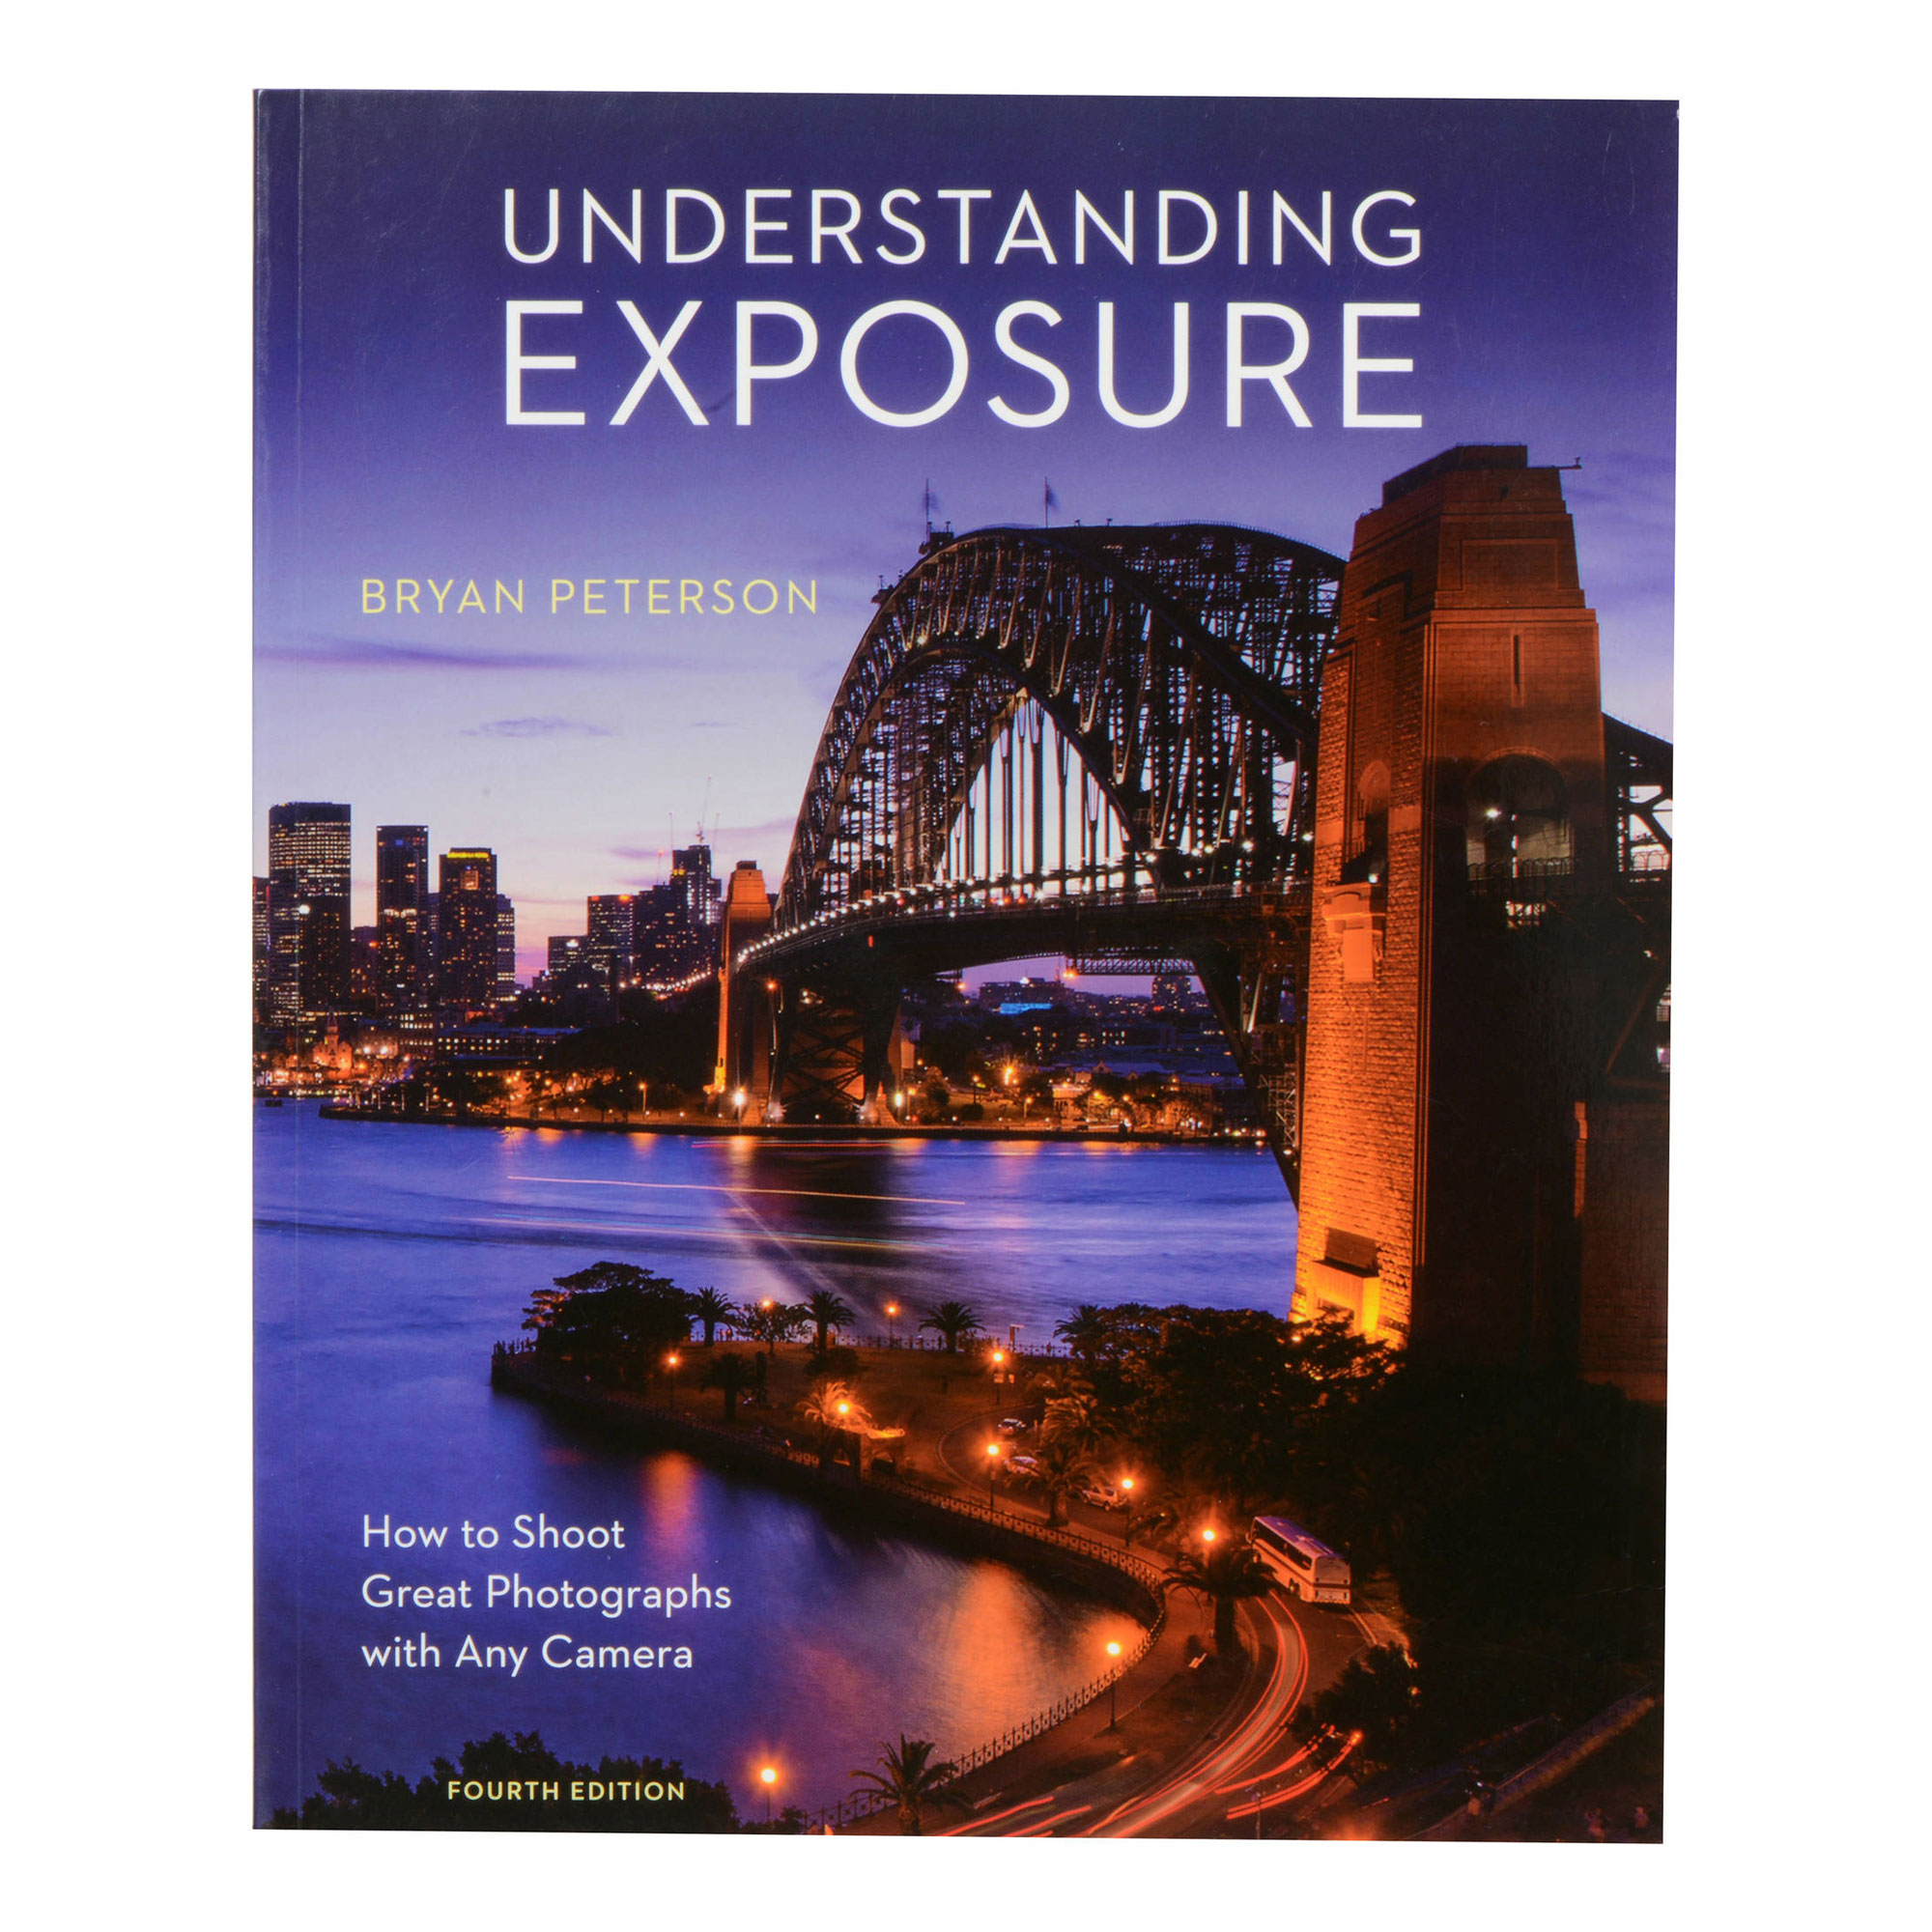 Understanding Exposure 4th Edition: How to Shoot with Any Camera - Paperback Book